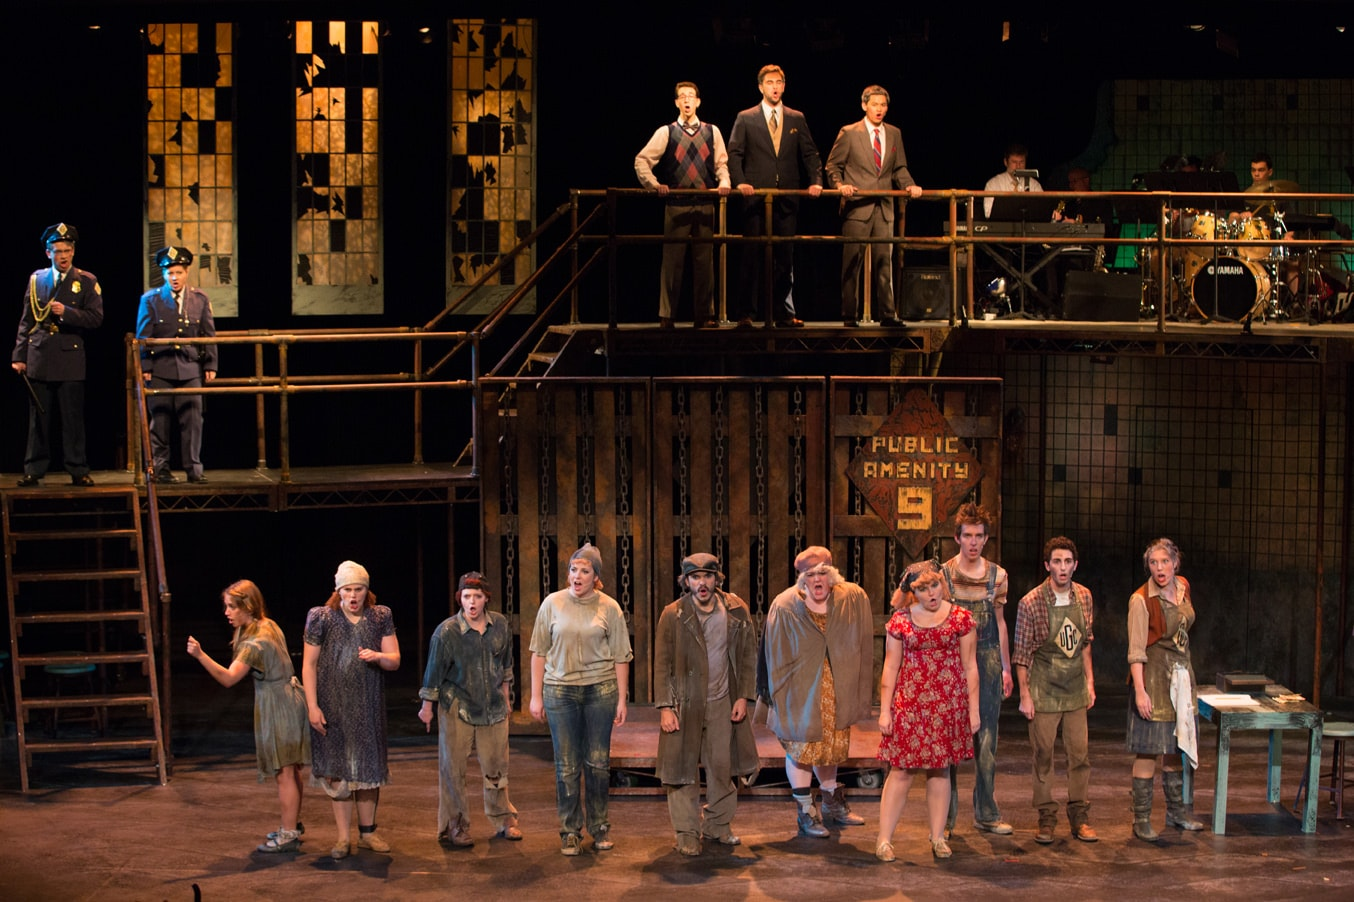 The cast of 'Urinetown the Musical.' Photo by William Atkins, Senior University Photographer.